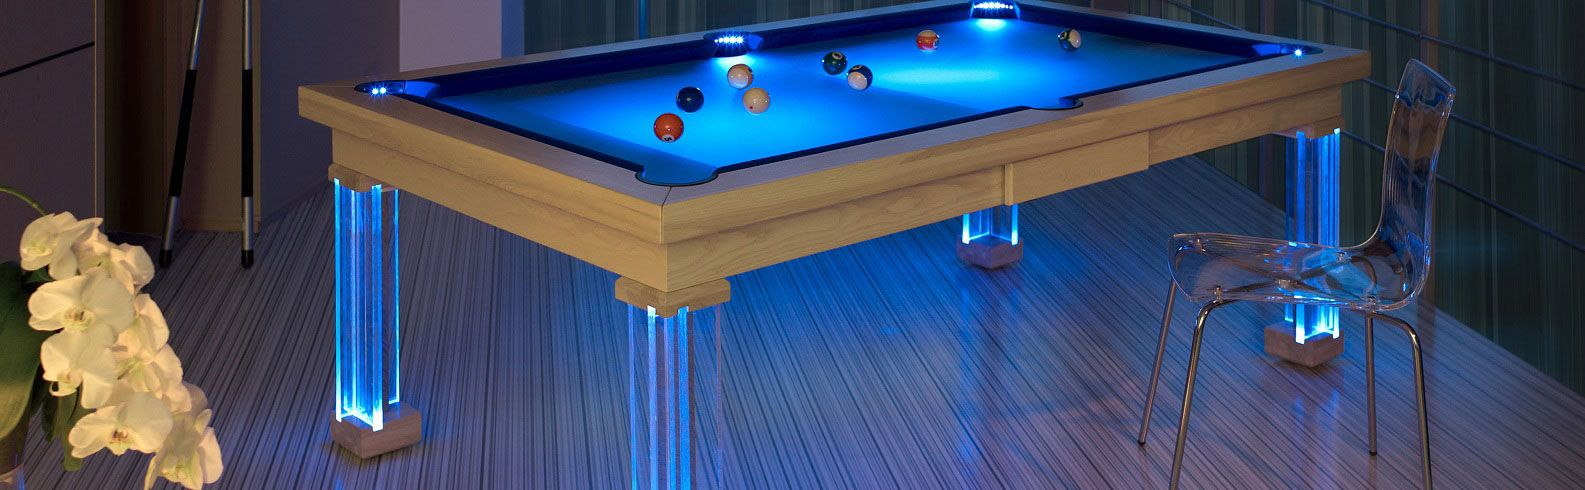 wwwLuxuryPoolTablescouk Luxury Pool Tables Bespoke Custom